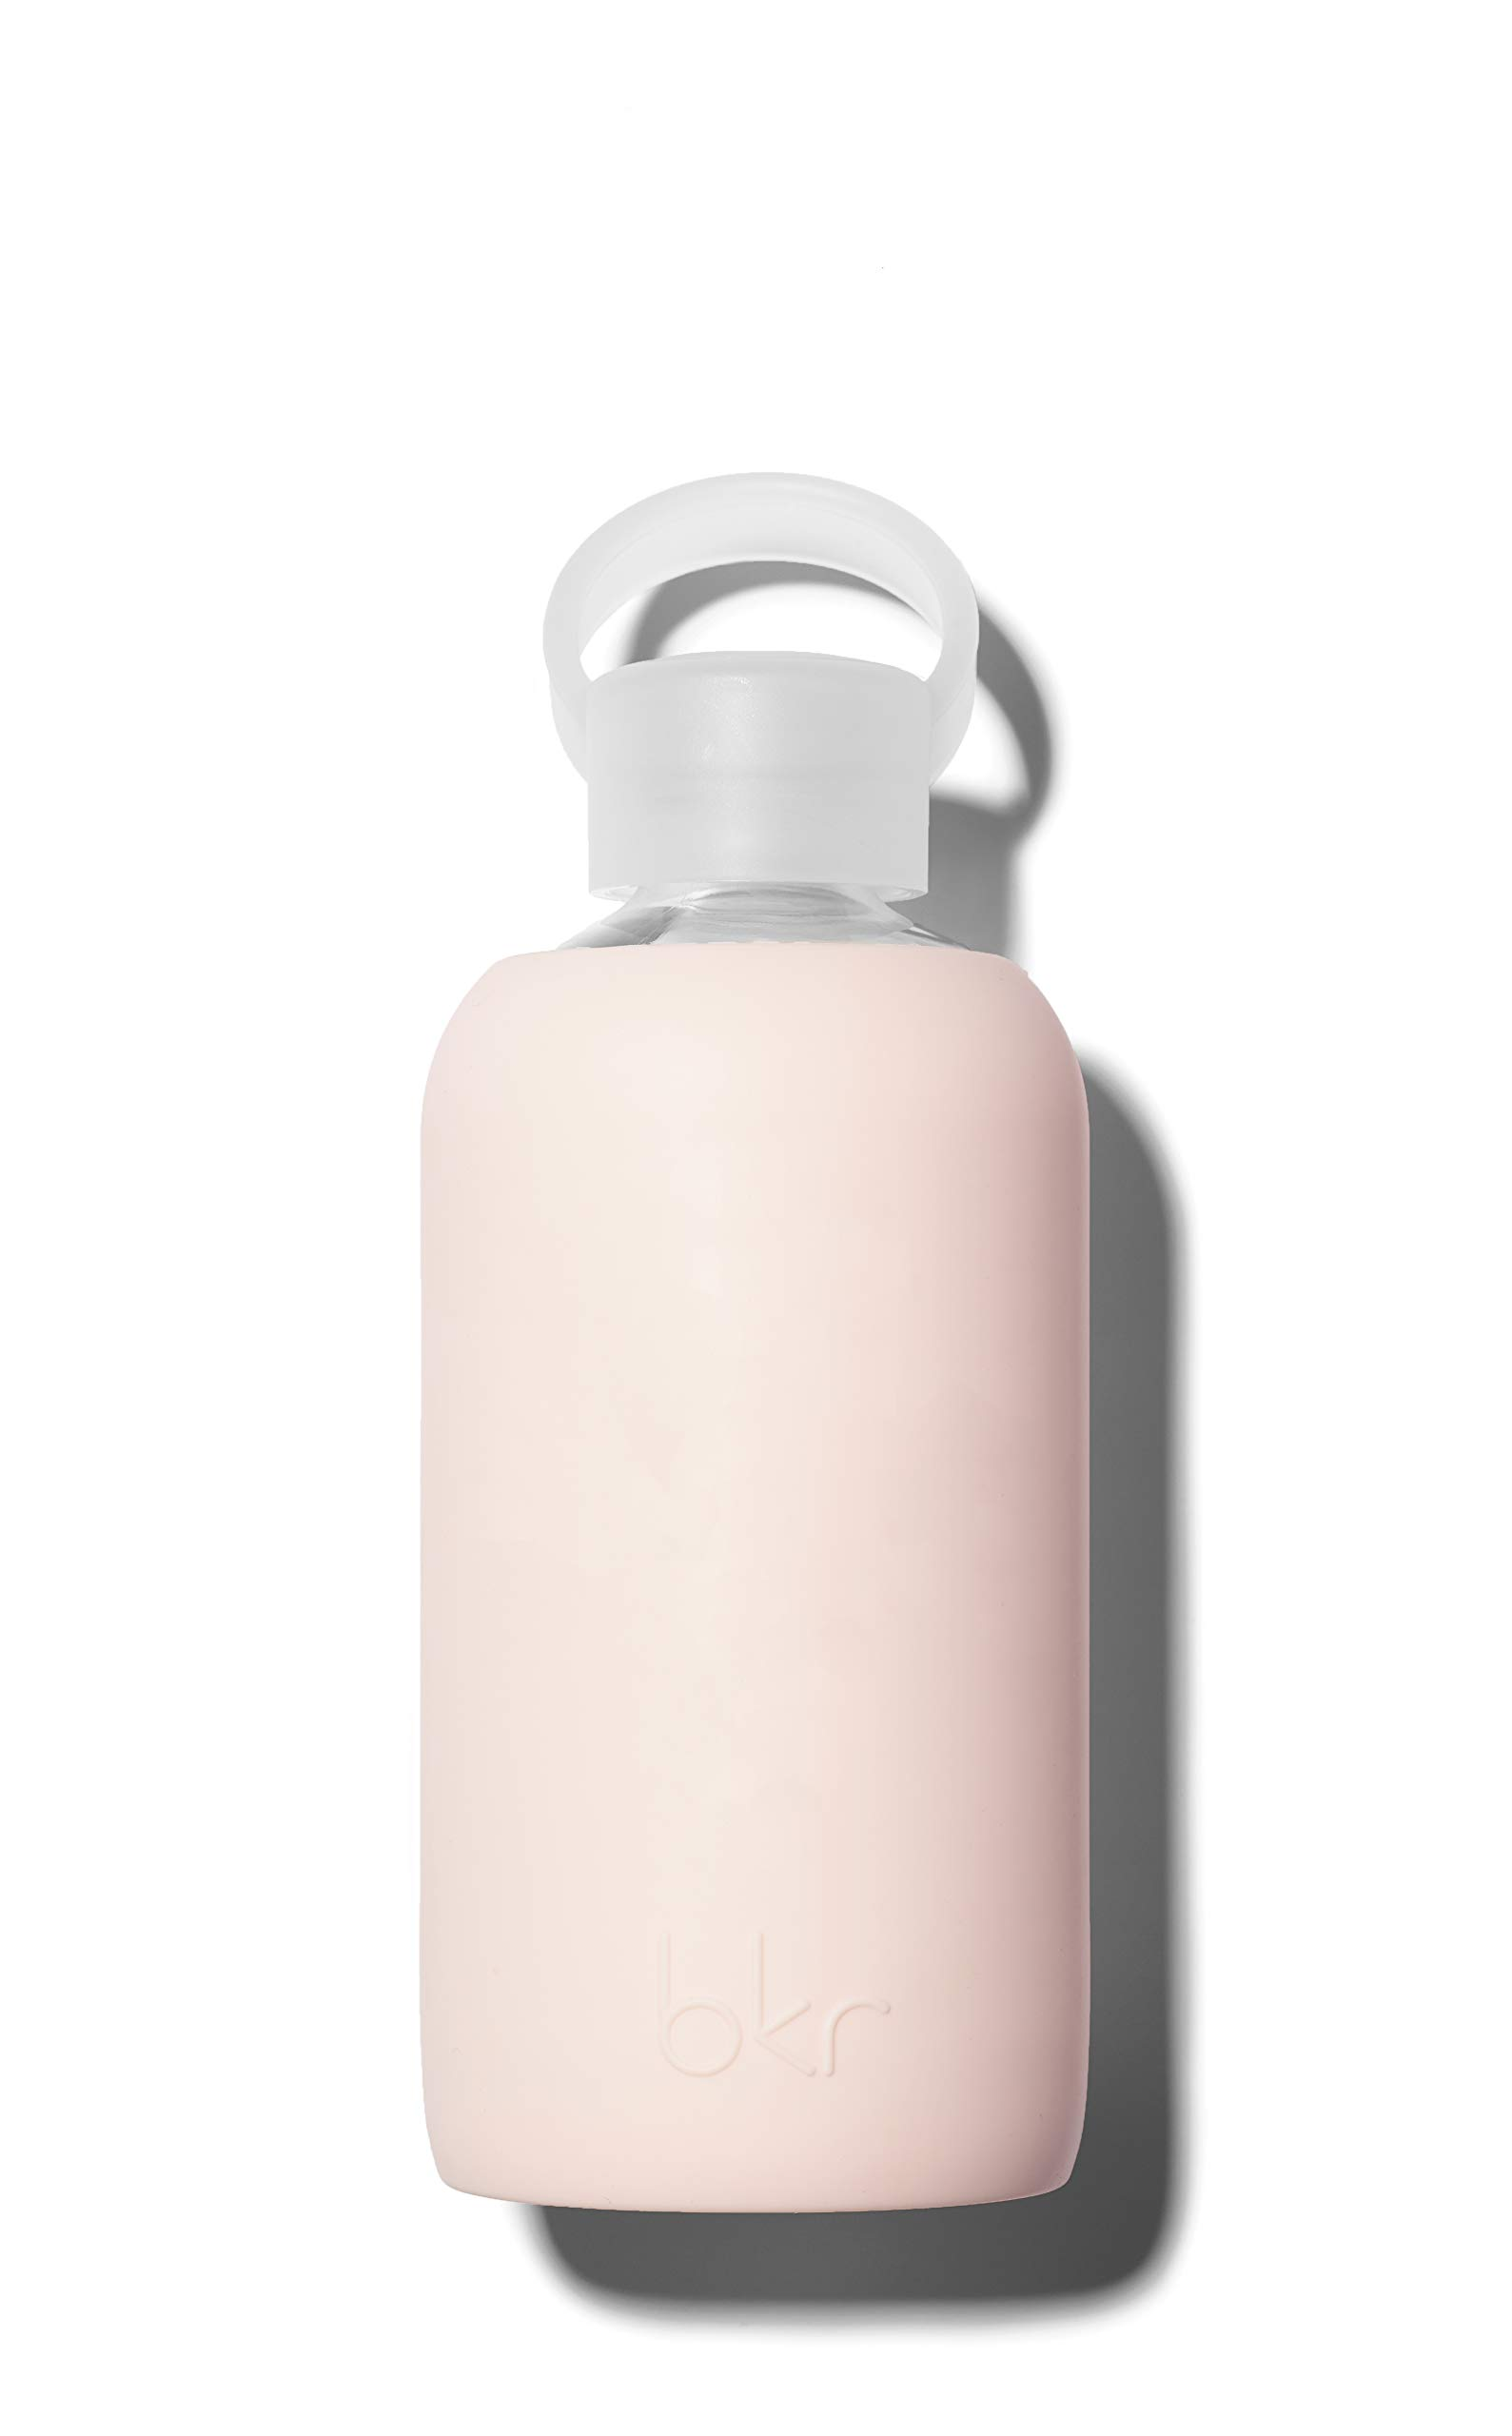 bkr Tutu Glass Water Bottle with Smooth Silicone Sleeve for Travel, Narrow Mouth, BPA-Free & Dishwasher Safe, Opaque Ballet Pale Peachy Pink, 16 oz / 500 mL by bkr (Image #1)